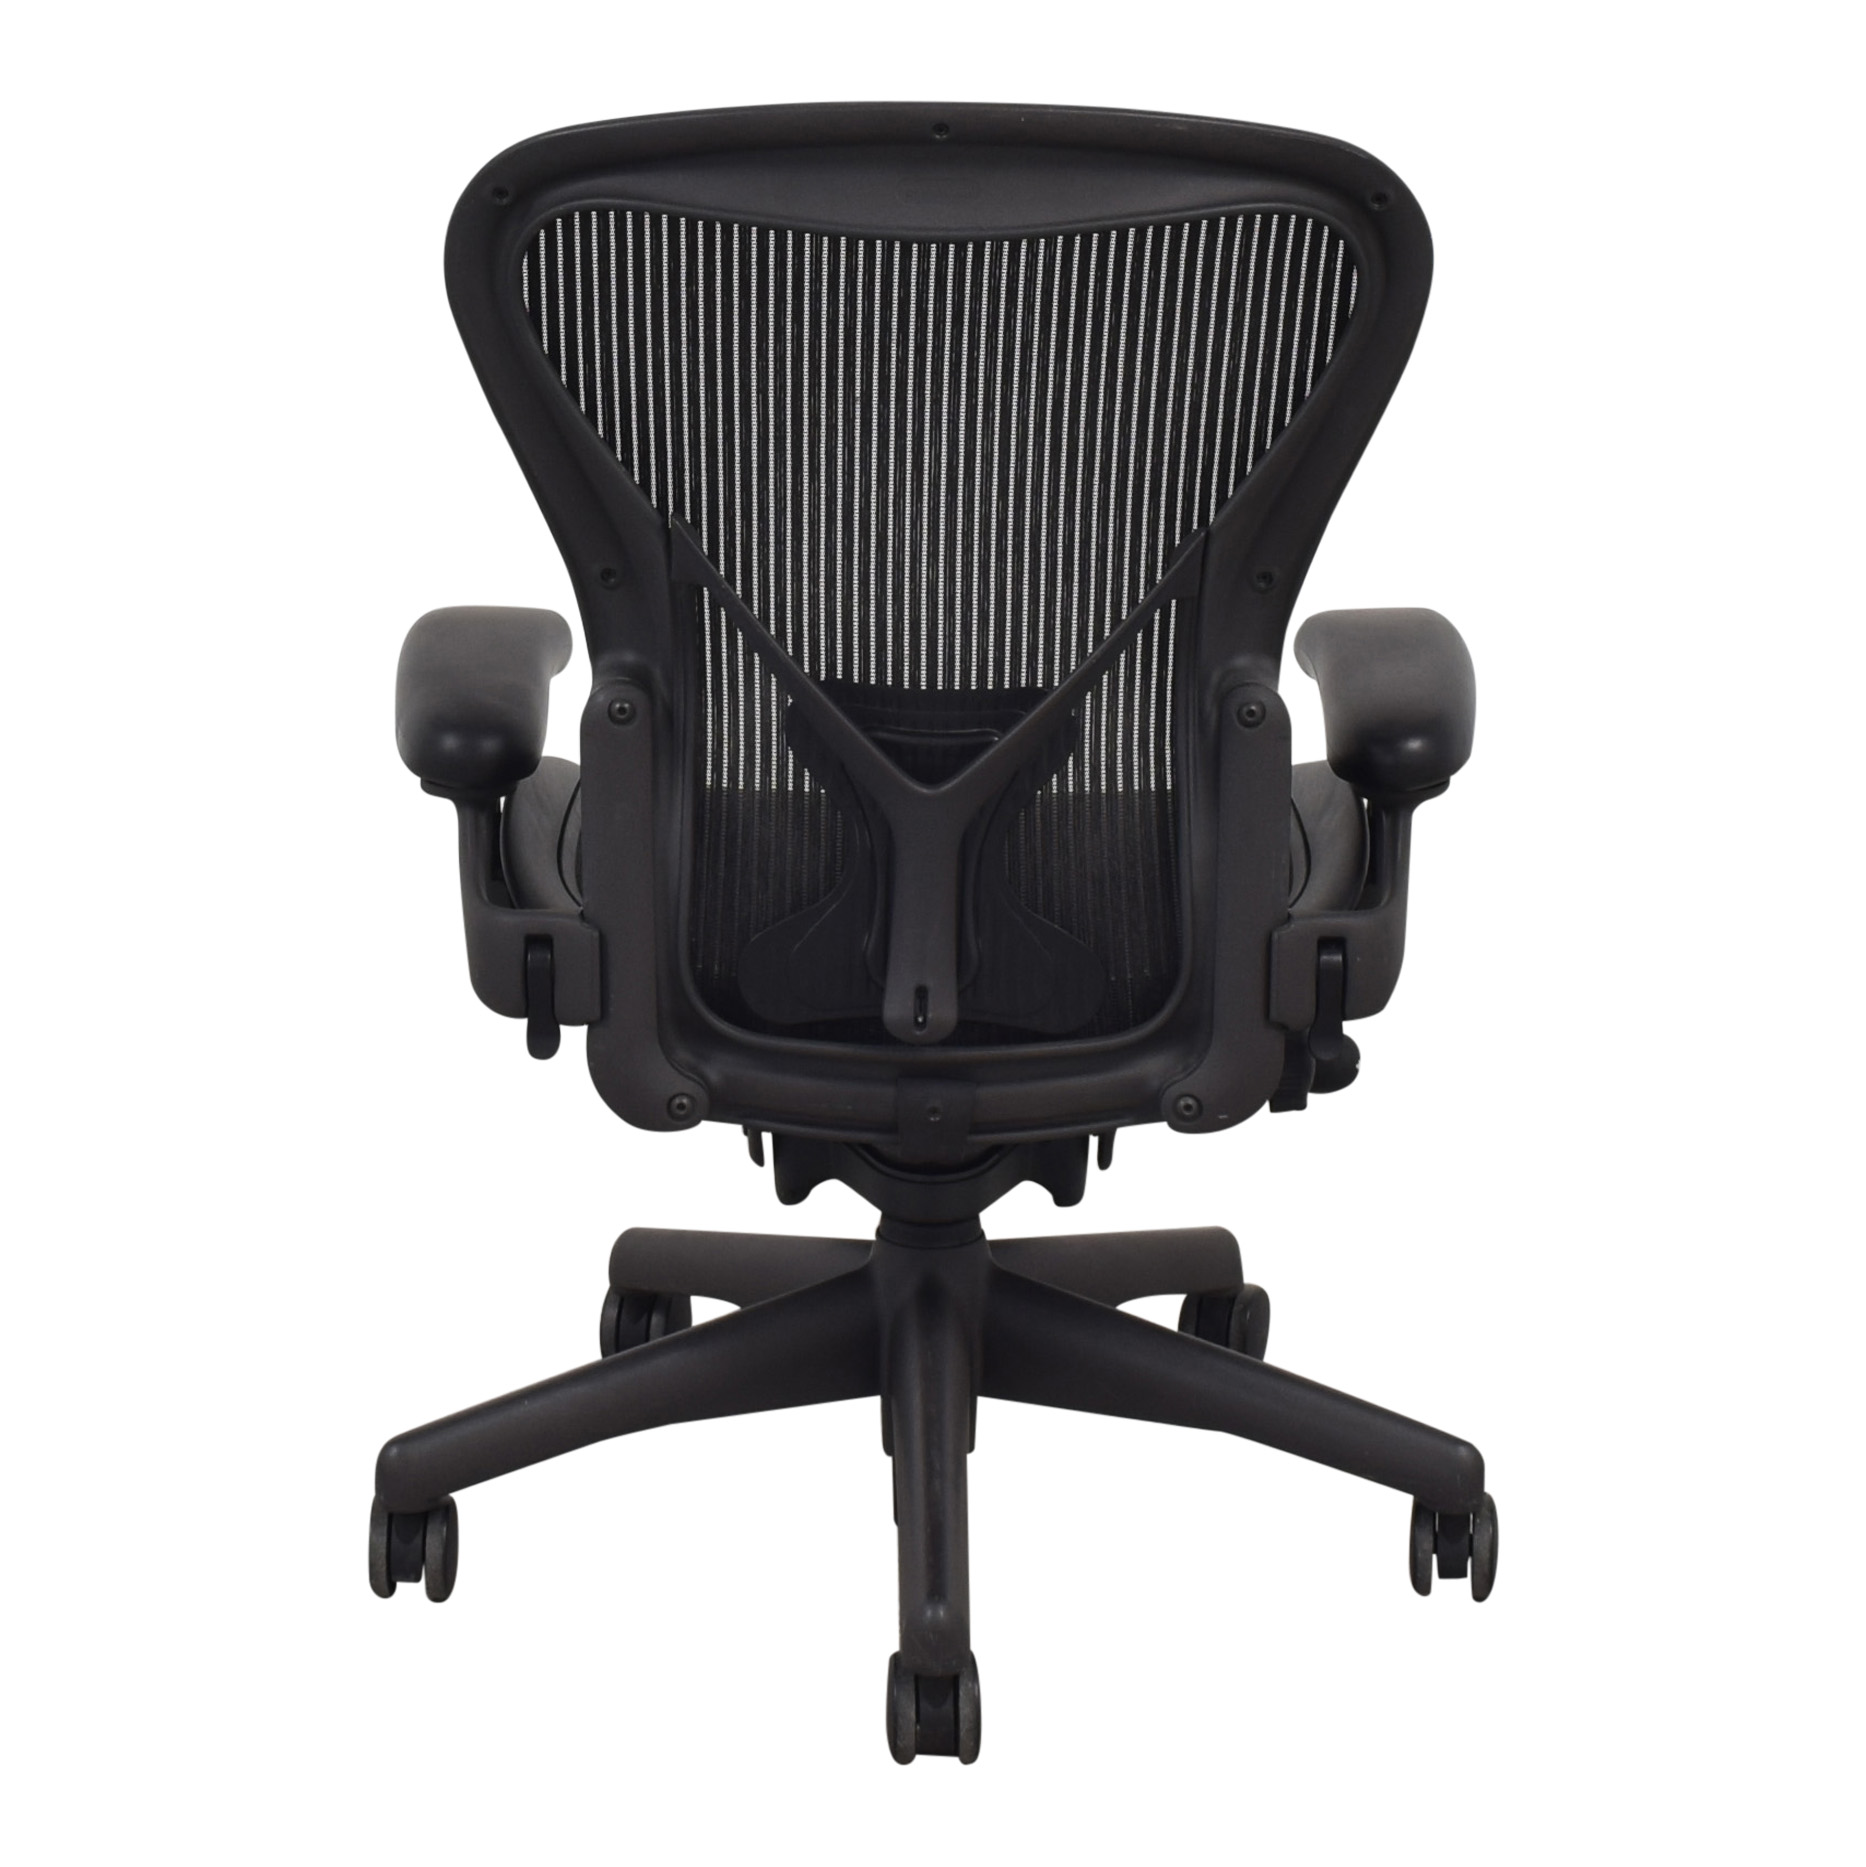 Herman Miller Herman Miller Size B Aeron Chair on sale